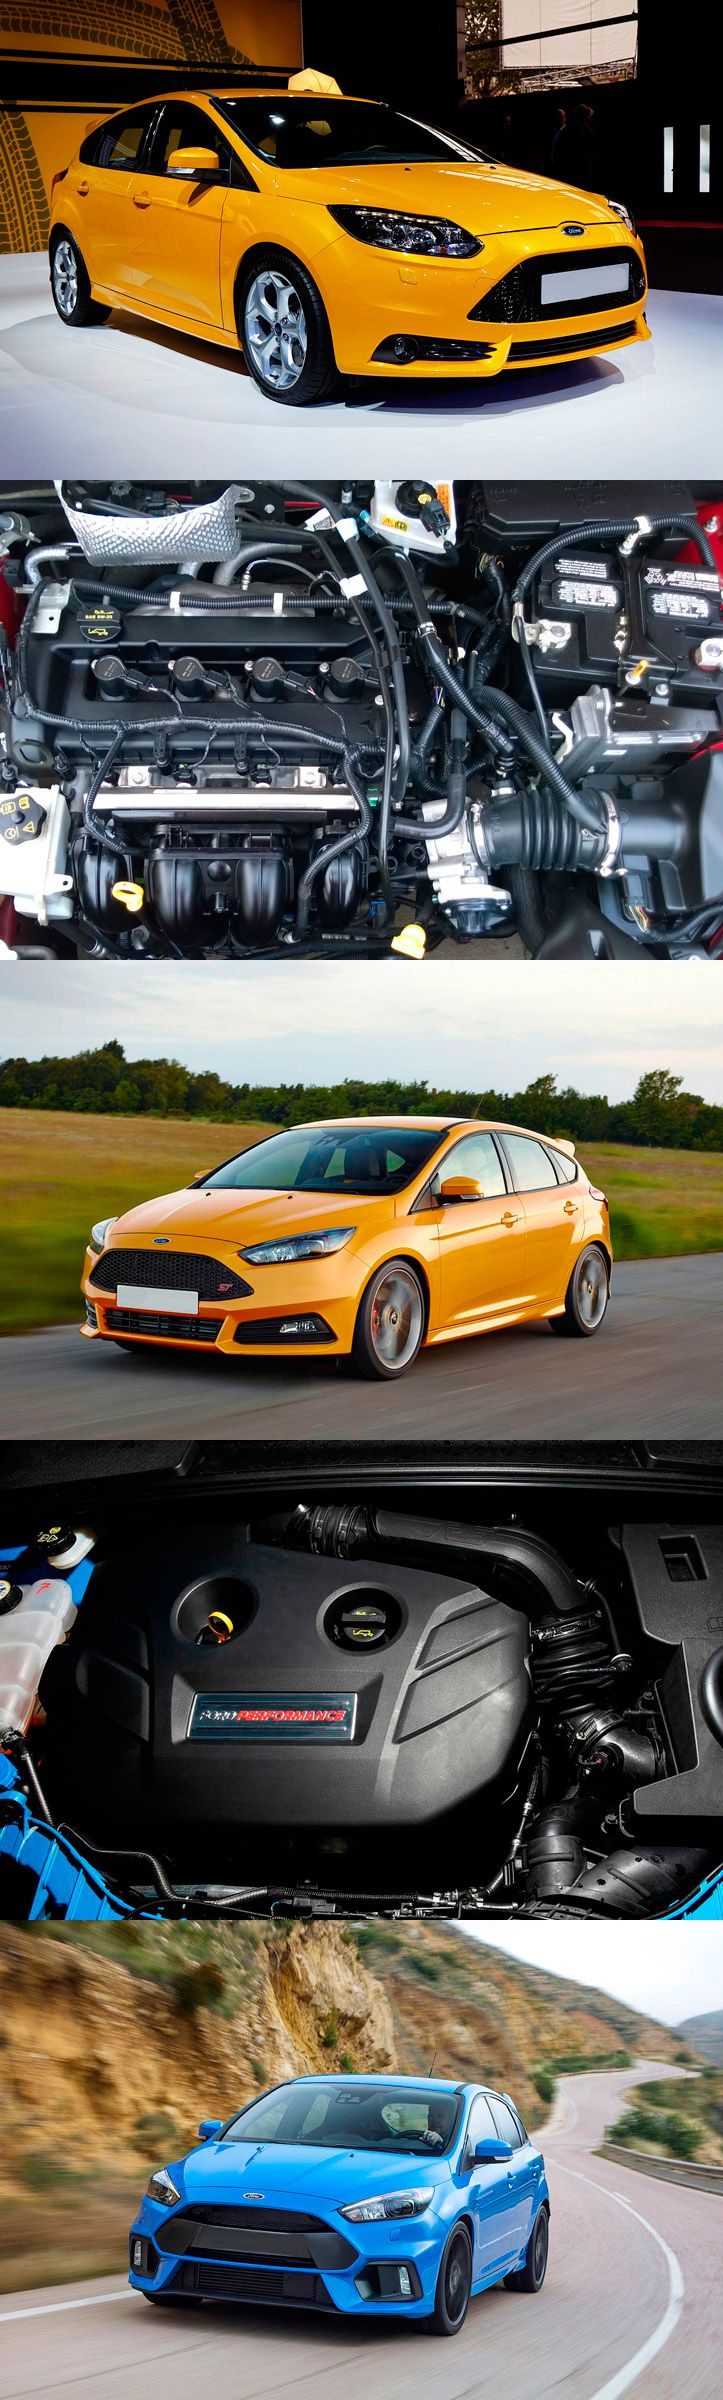 ford focus improved in quality and efficient in engines read full blog